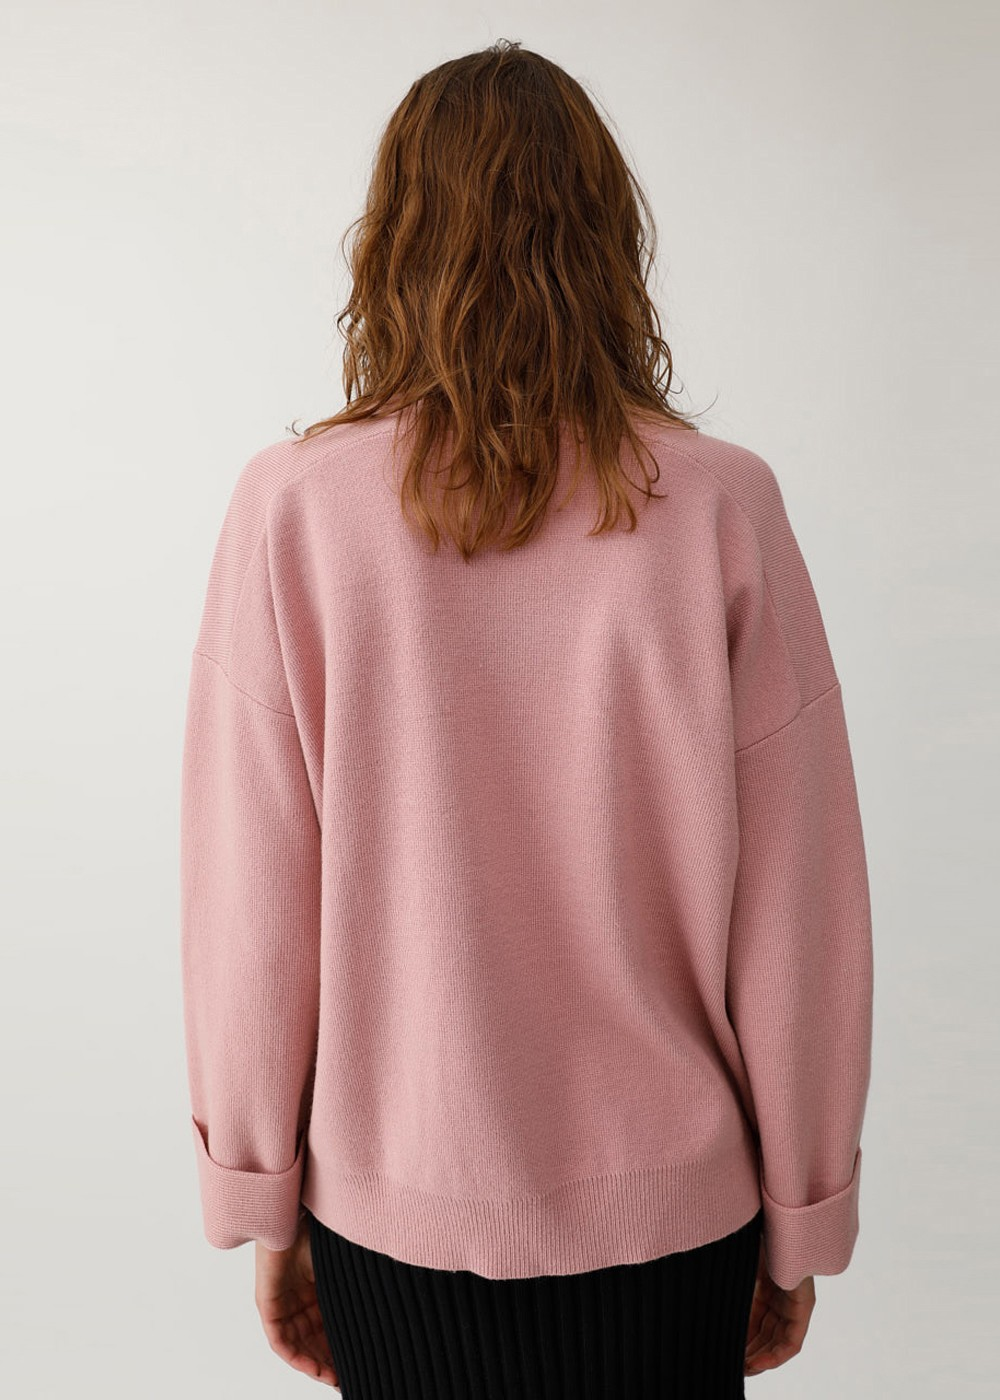 【最大60%OFF】V NECK KNIT|L/PNK|ニット|MOUSSY